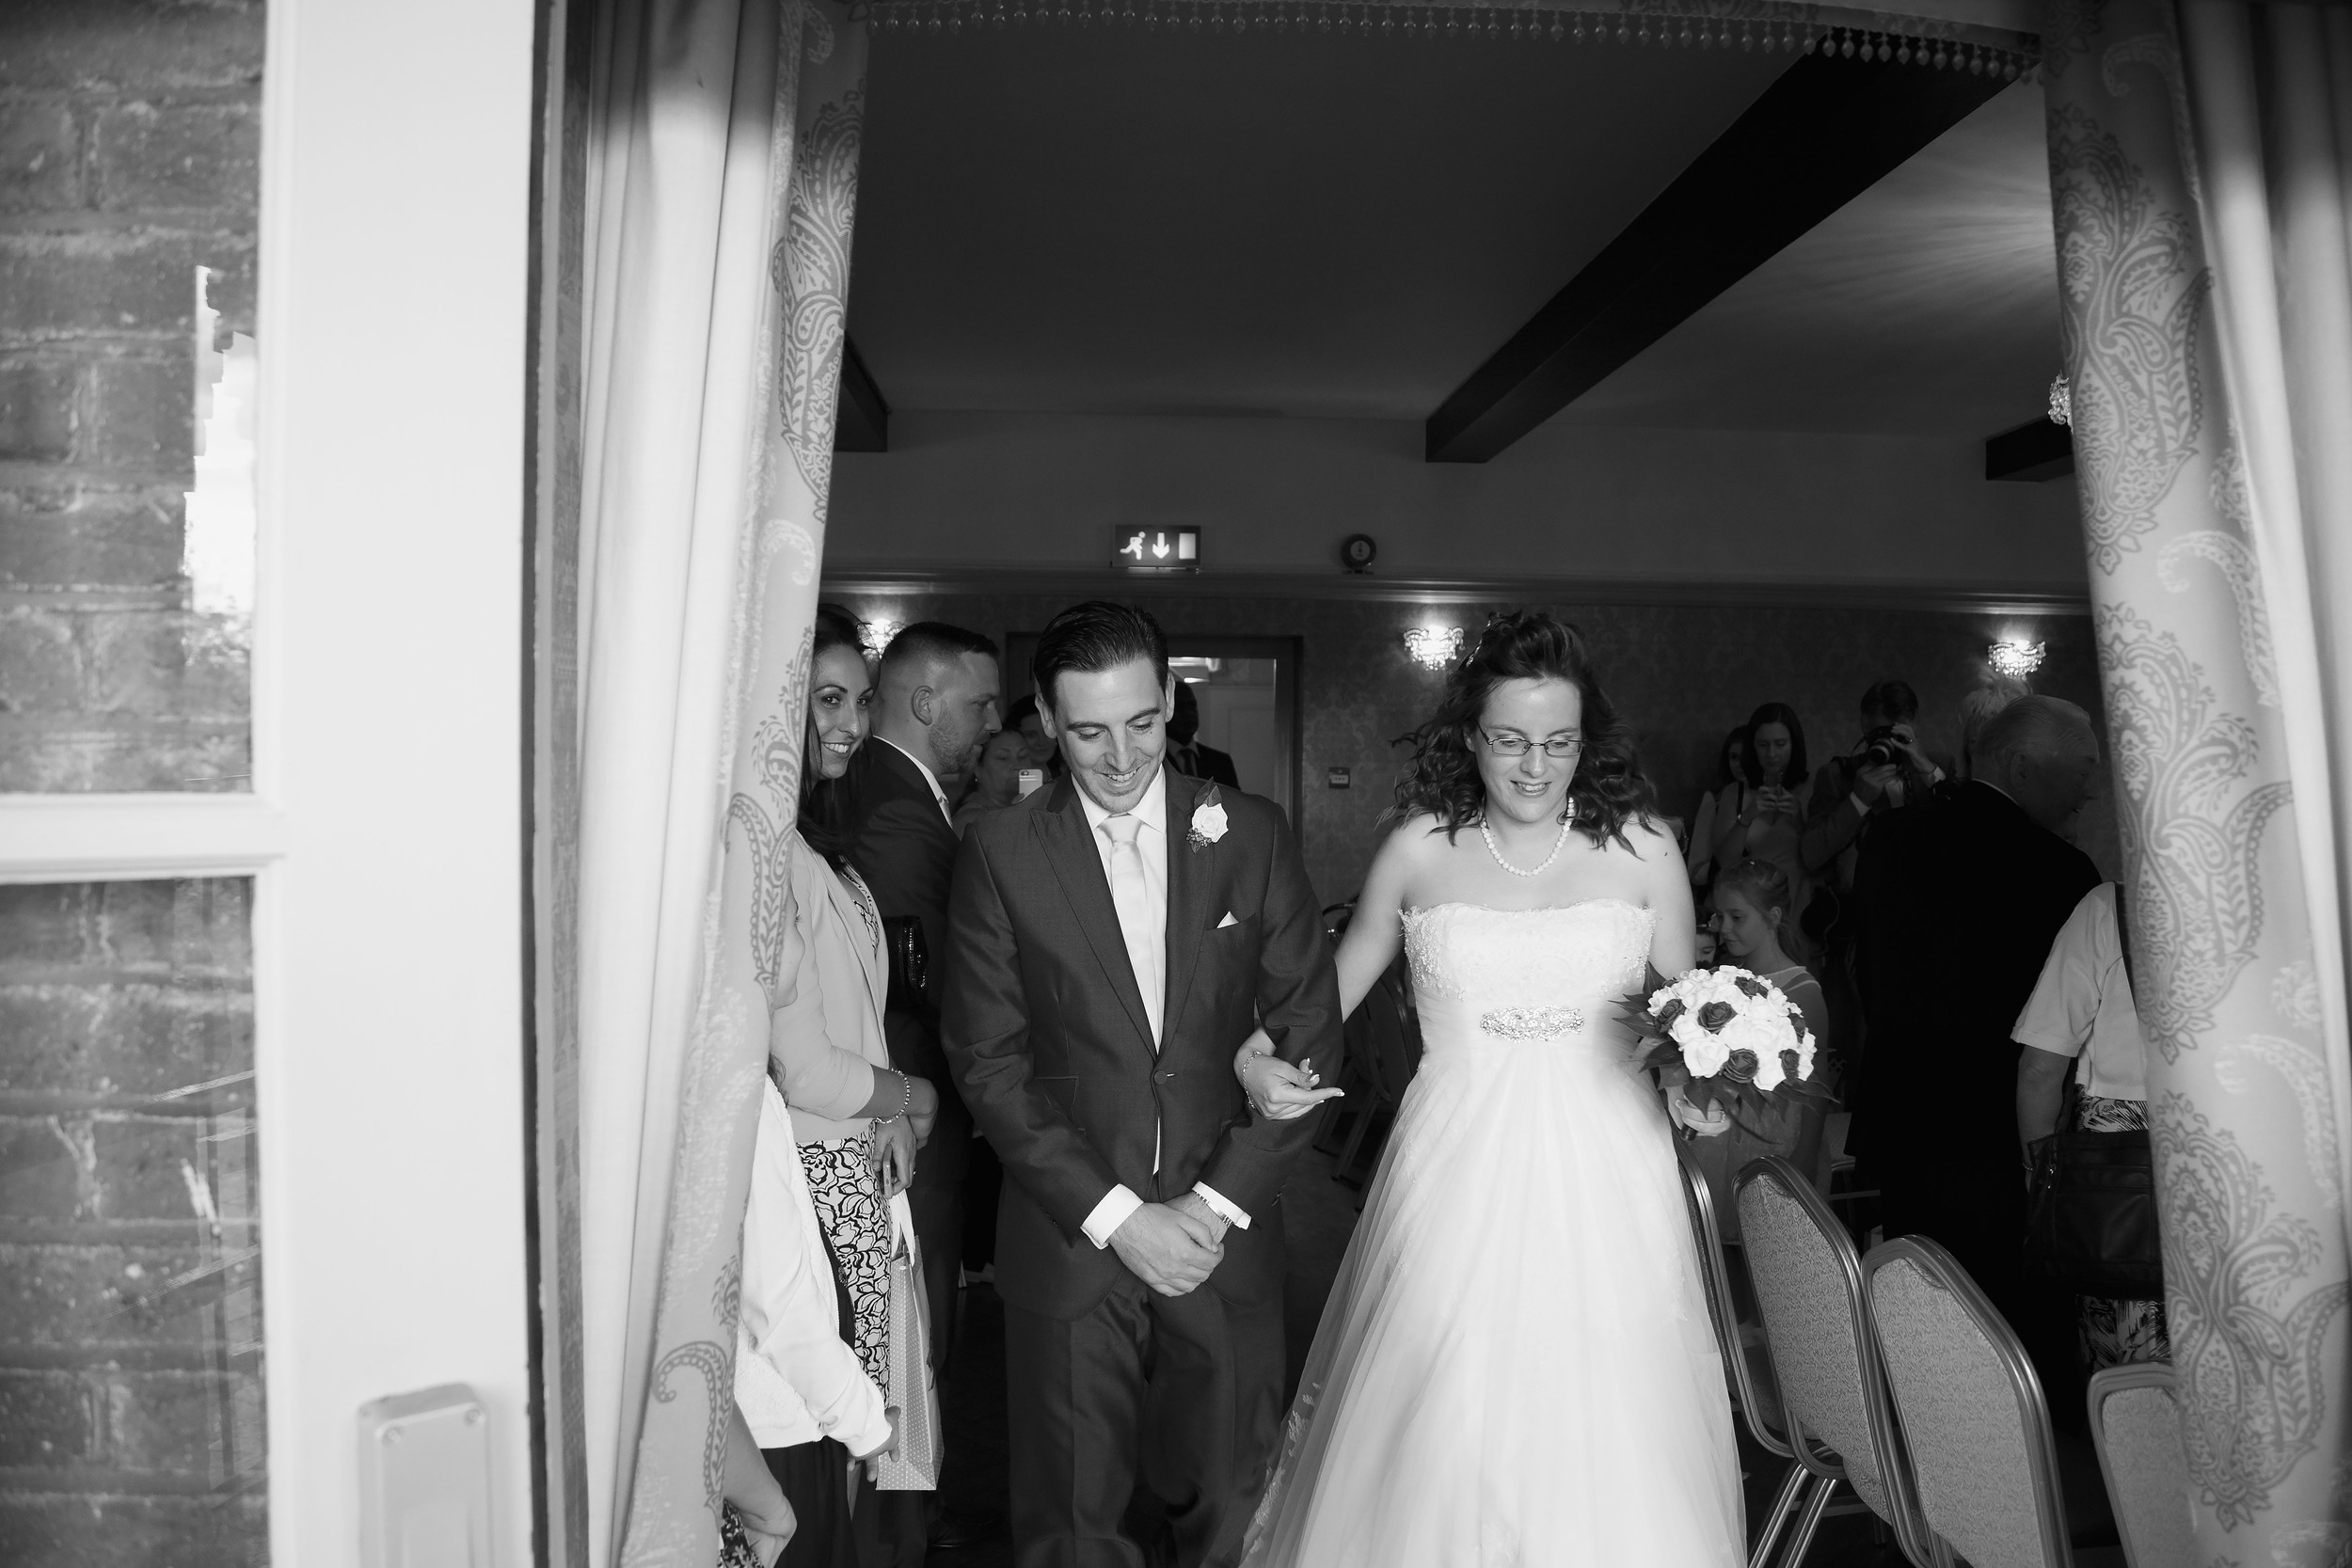 Mr_and_Mrs_Carter (192 of 400).jpg